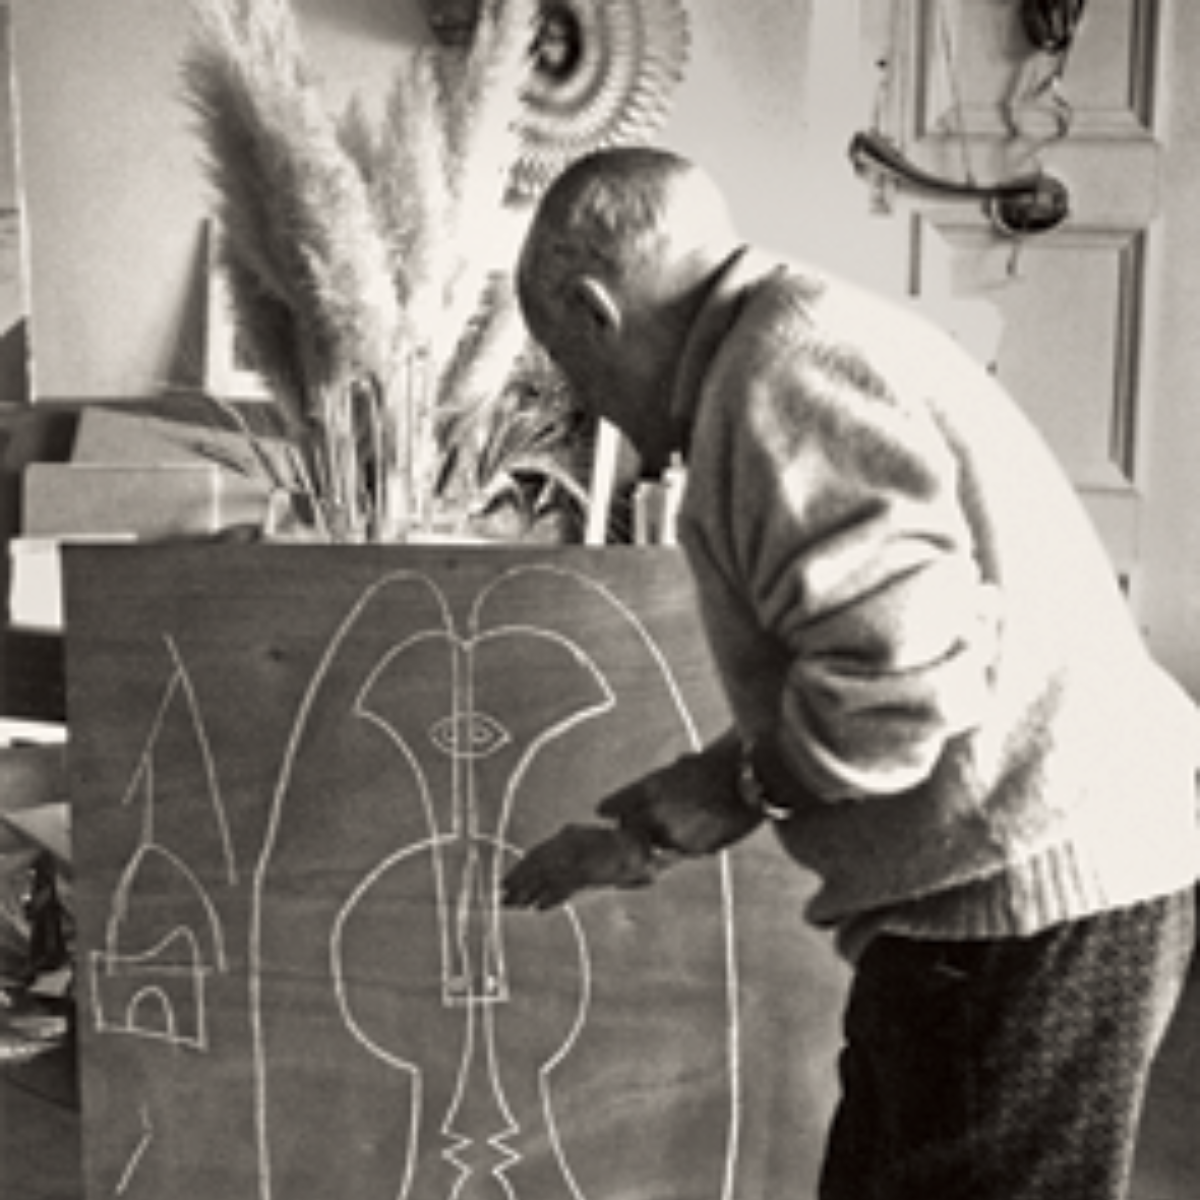 Pablo Picasso in Mougins, France, 1967, showing one of the Art Institute of Chicago studies for the Richard J. Daley Center Sculpture. (Photo courtesy of Skidmore, Owings, and Merrill LLP./Estate of Pablo Picasso / Artists Rights Society, via the Art Institute of Chicago)